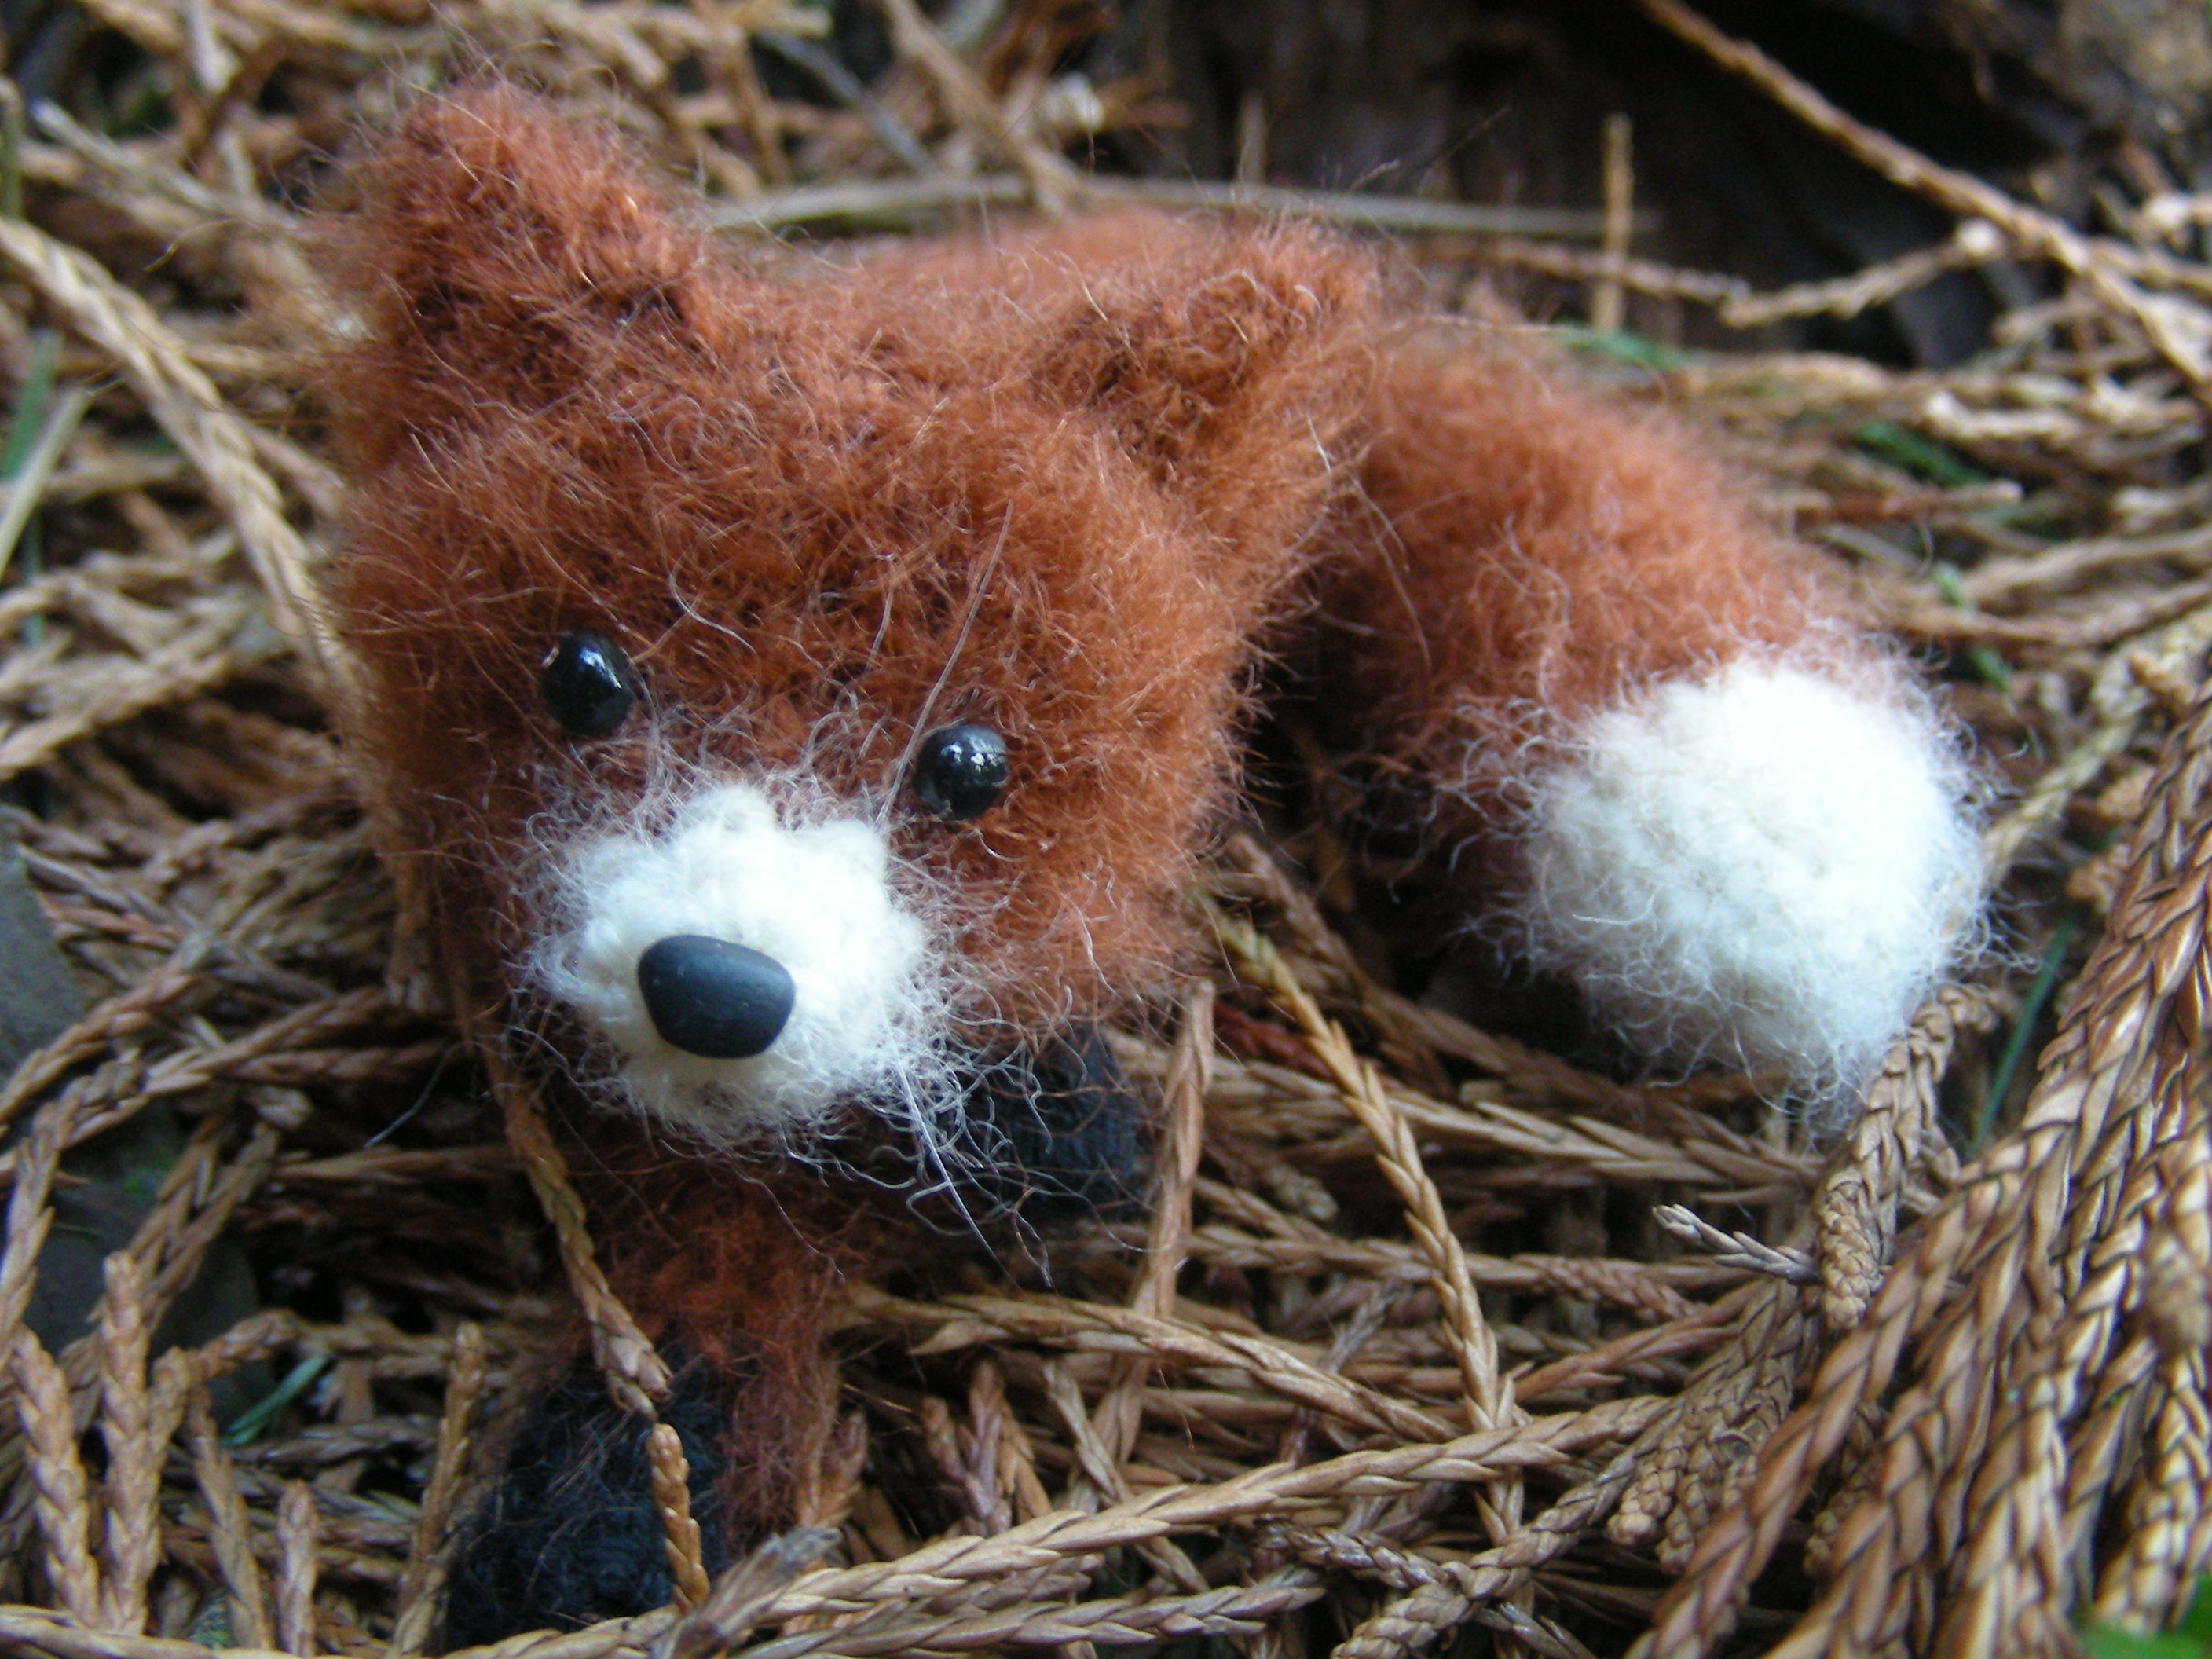 Little Fox Amigurumi : Knitographical: Z is for Zoo